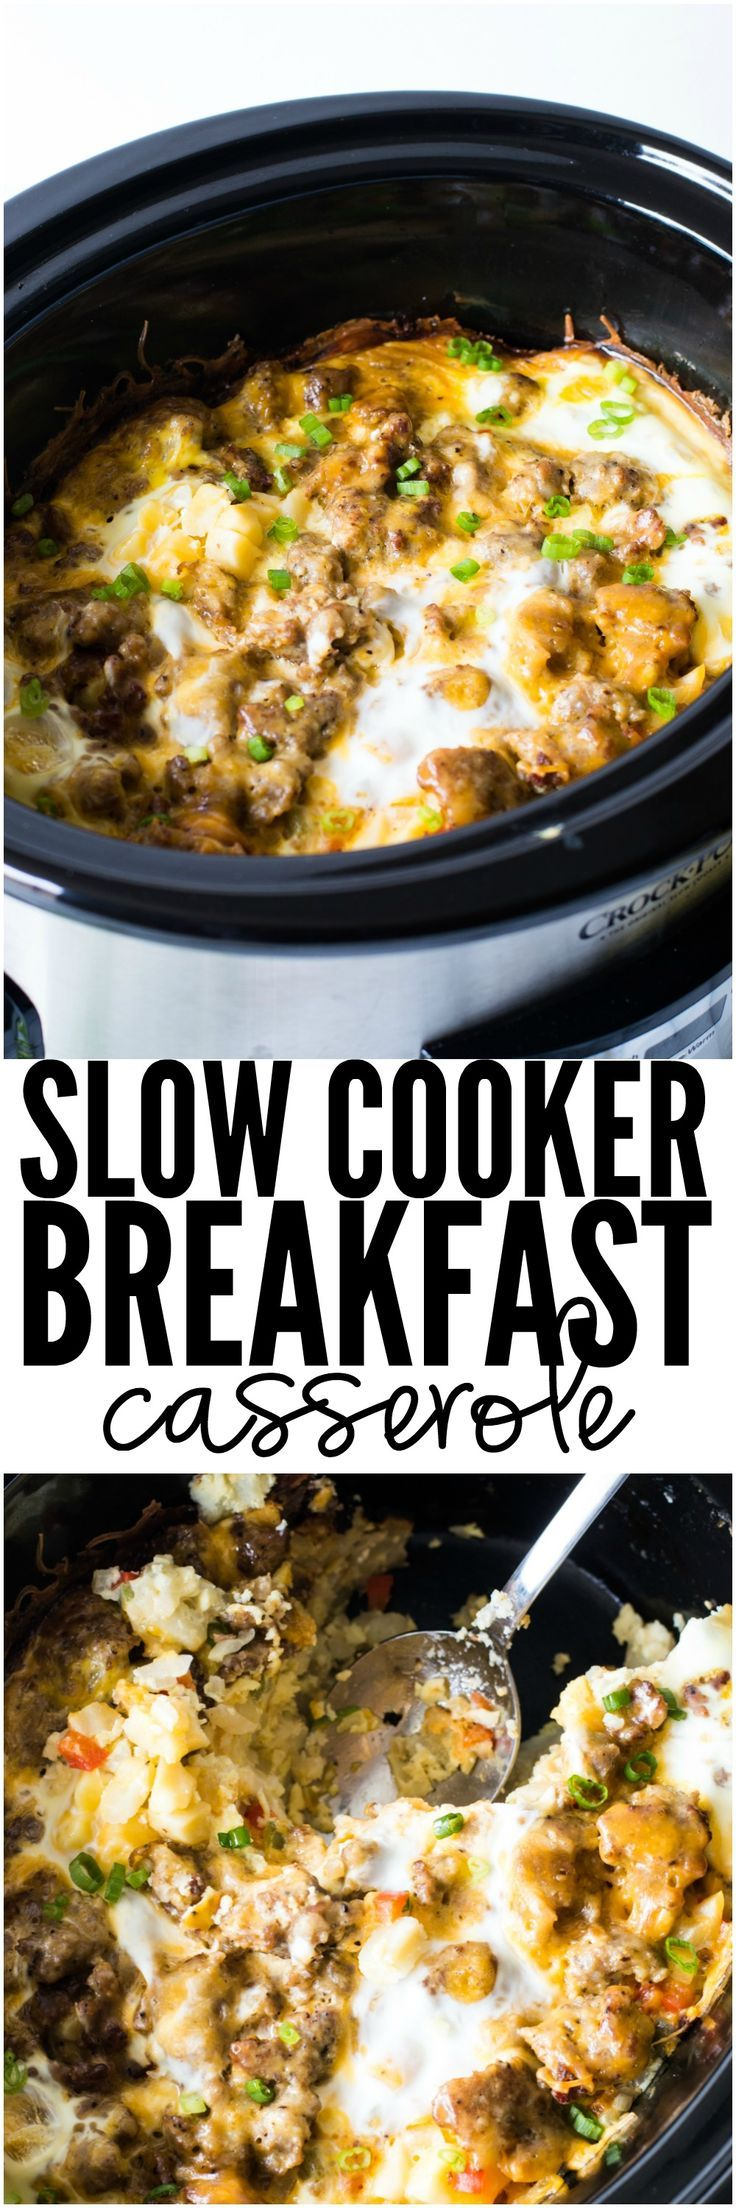 Slow Cooker Breakfast Casserole https://www.youtube.com/c/AminulIslambiggan01822